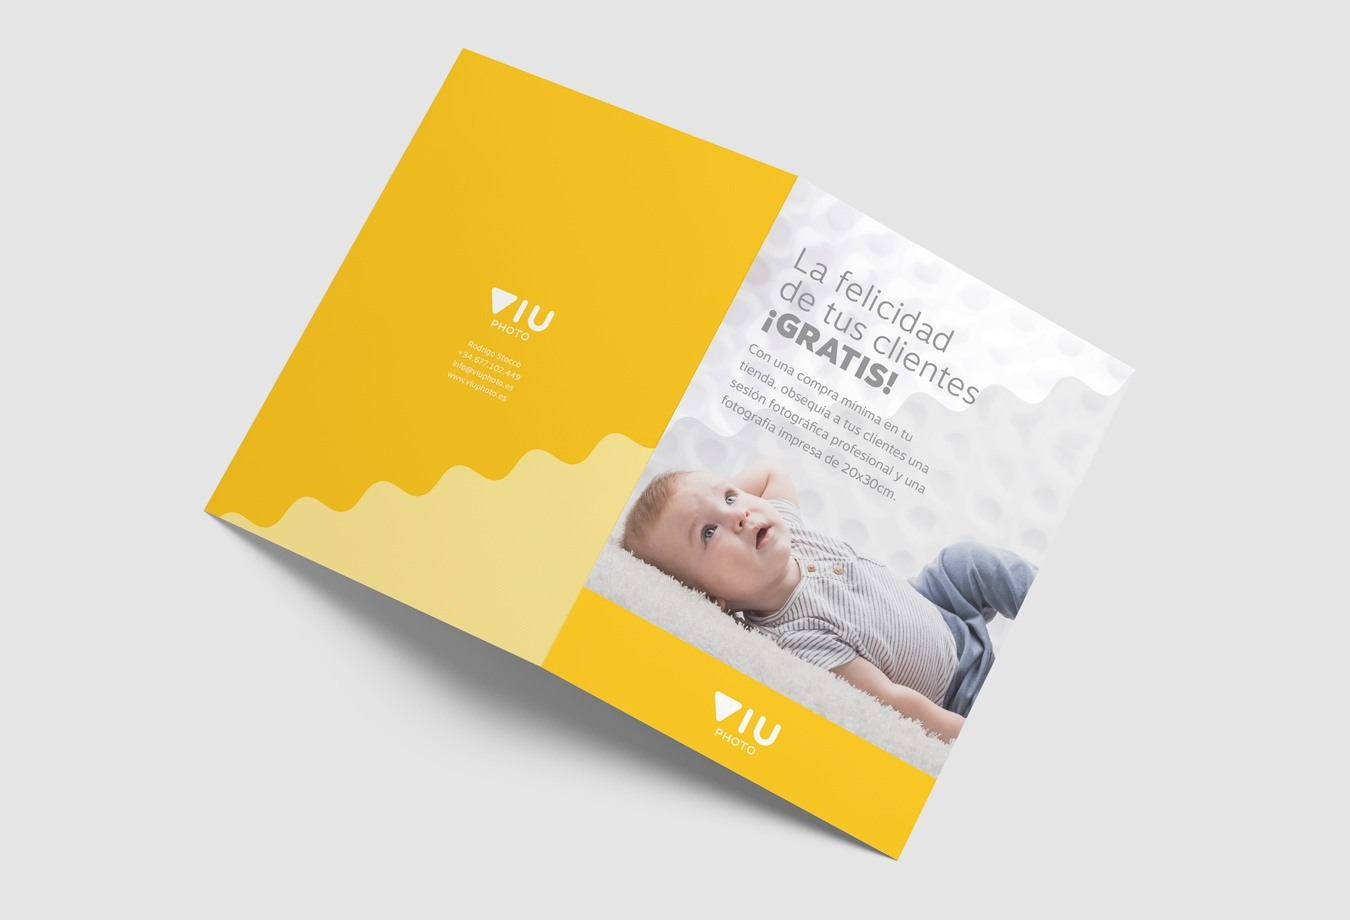 12-viu-visualidentity